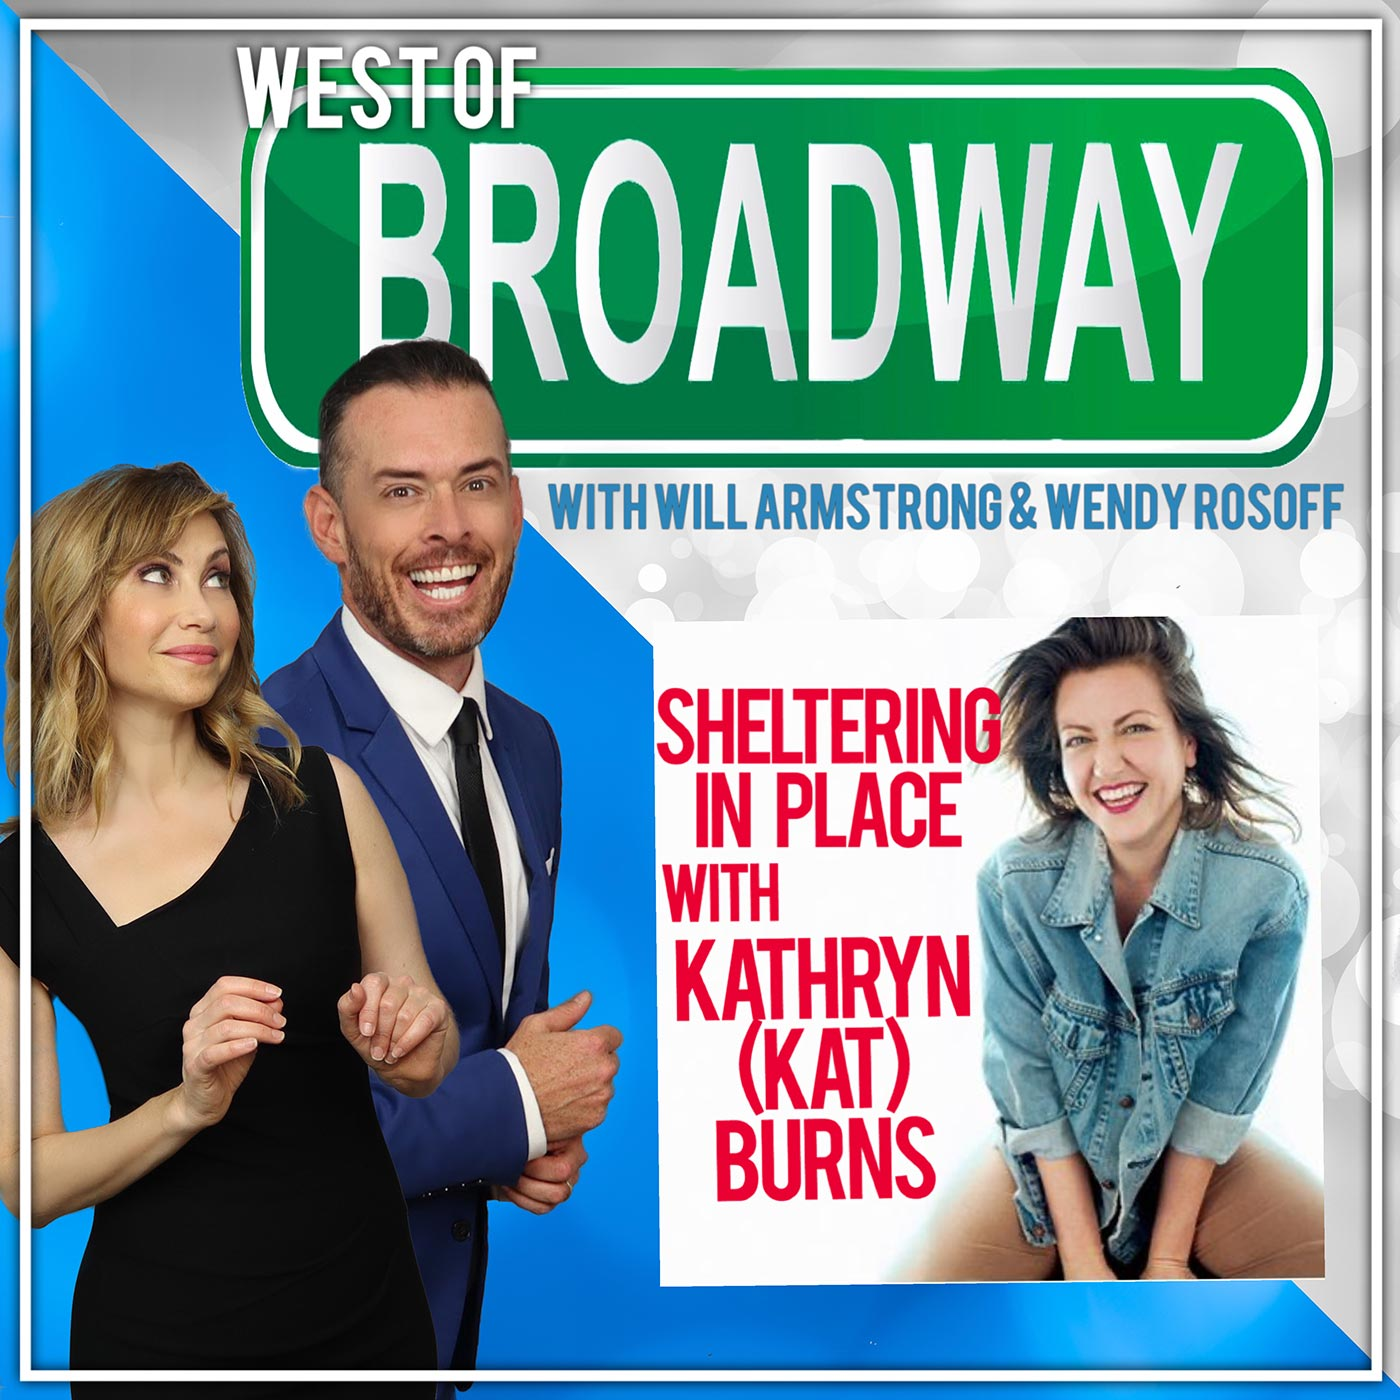 West of Broadway - Sheltering in Place with Kathryn (KAT) Burns